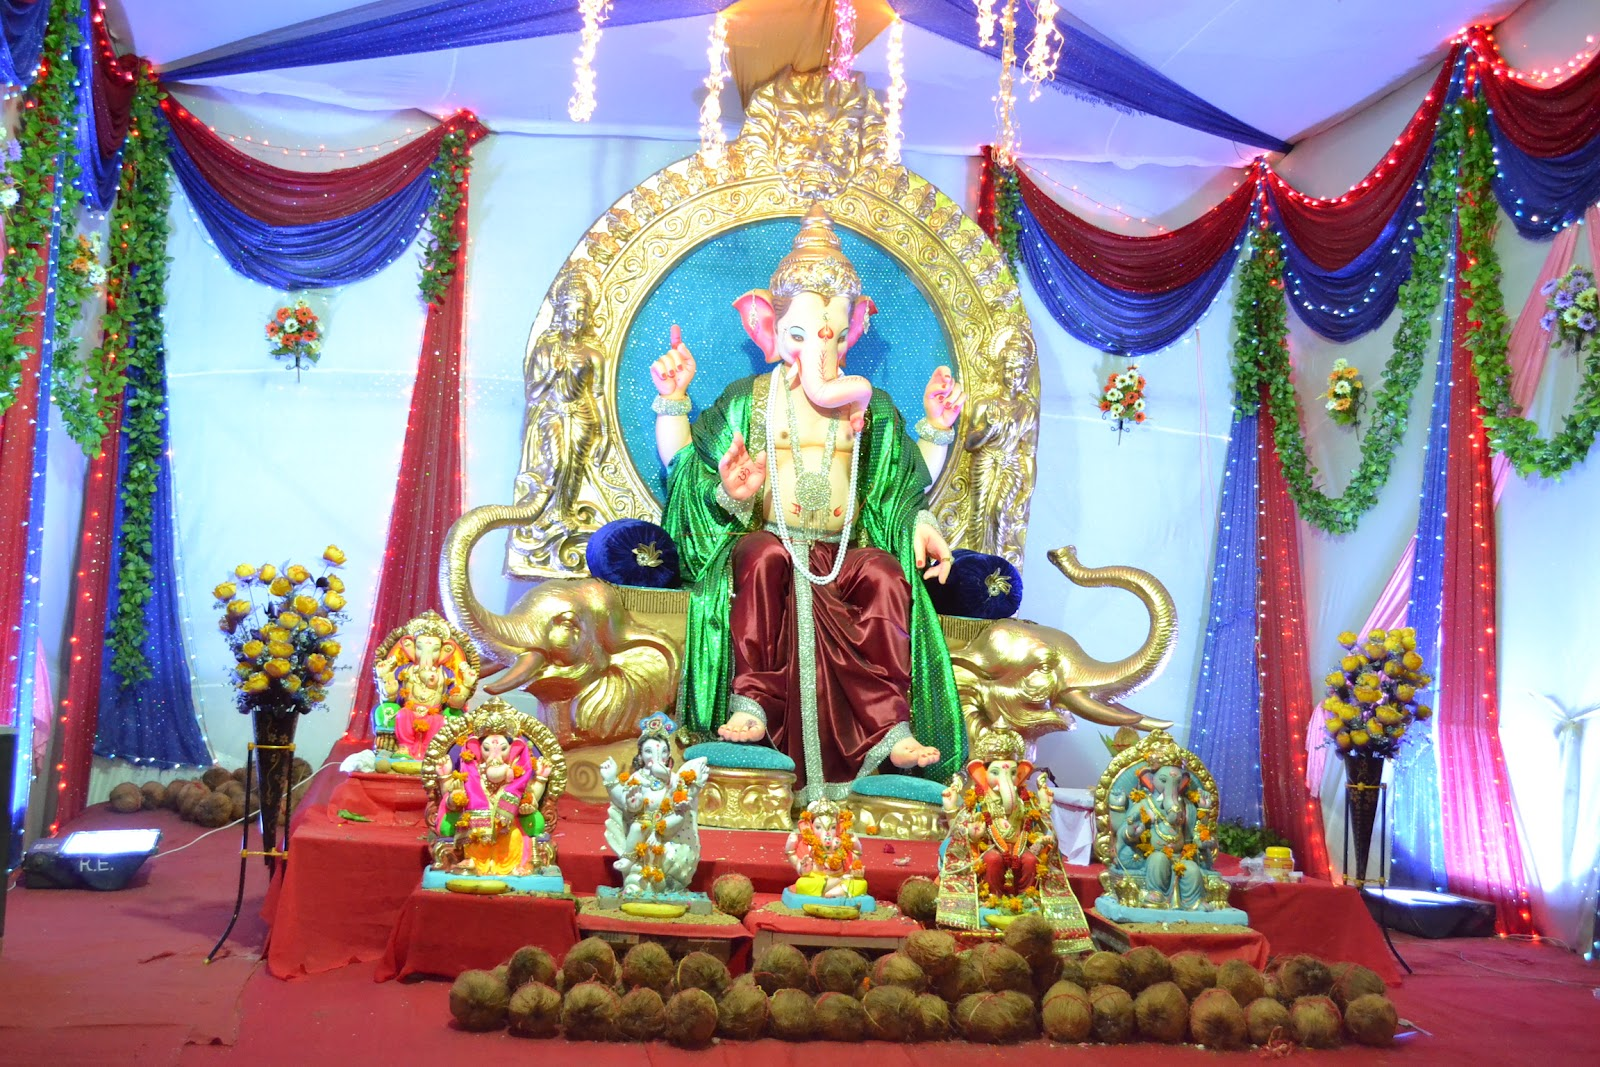 Hd Wallpapers Hindu God Free Images Photo Download